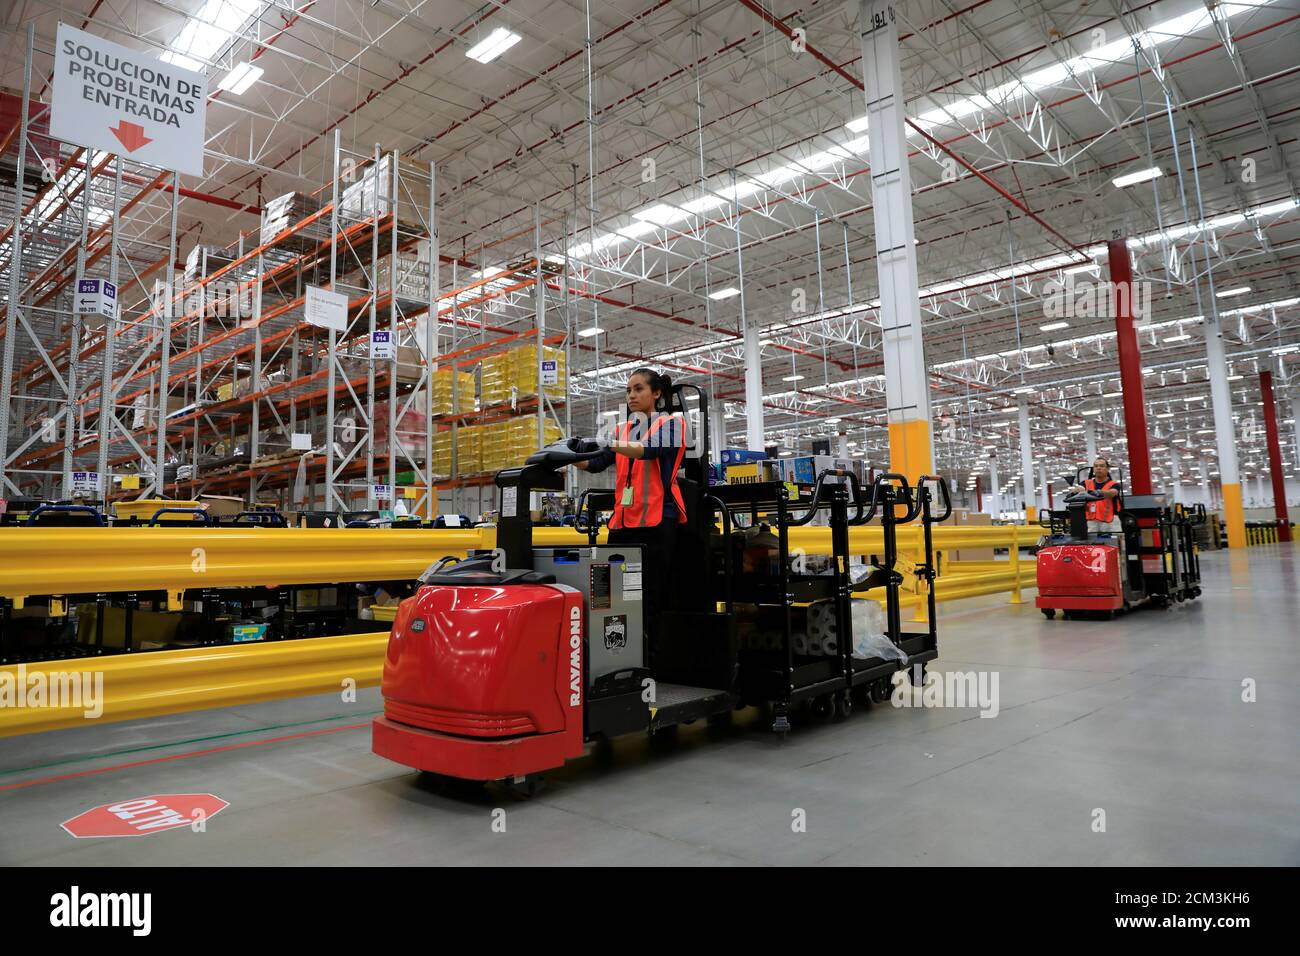 Amazon Warehouse 2019 High Resolution Stock Photography And Images Alamy